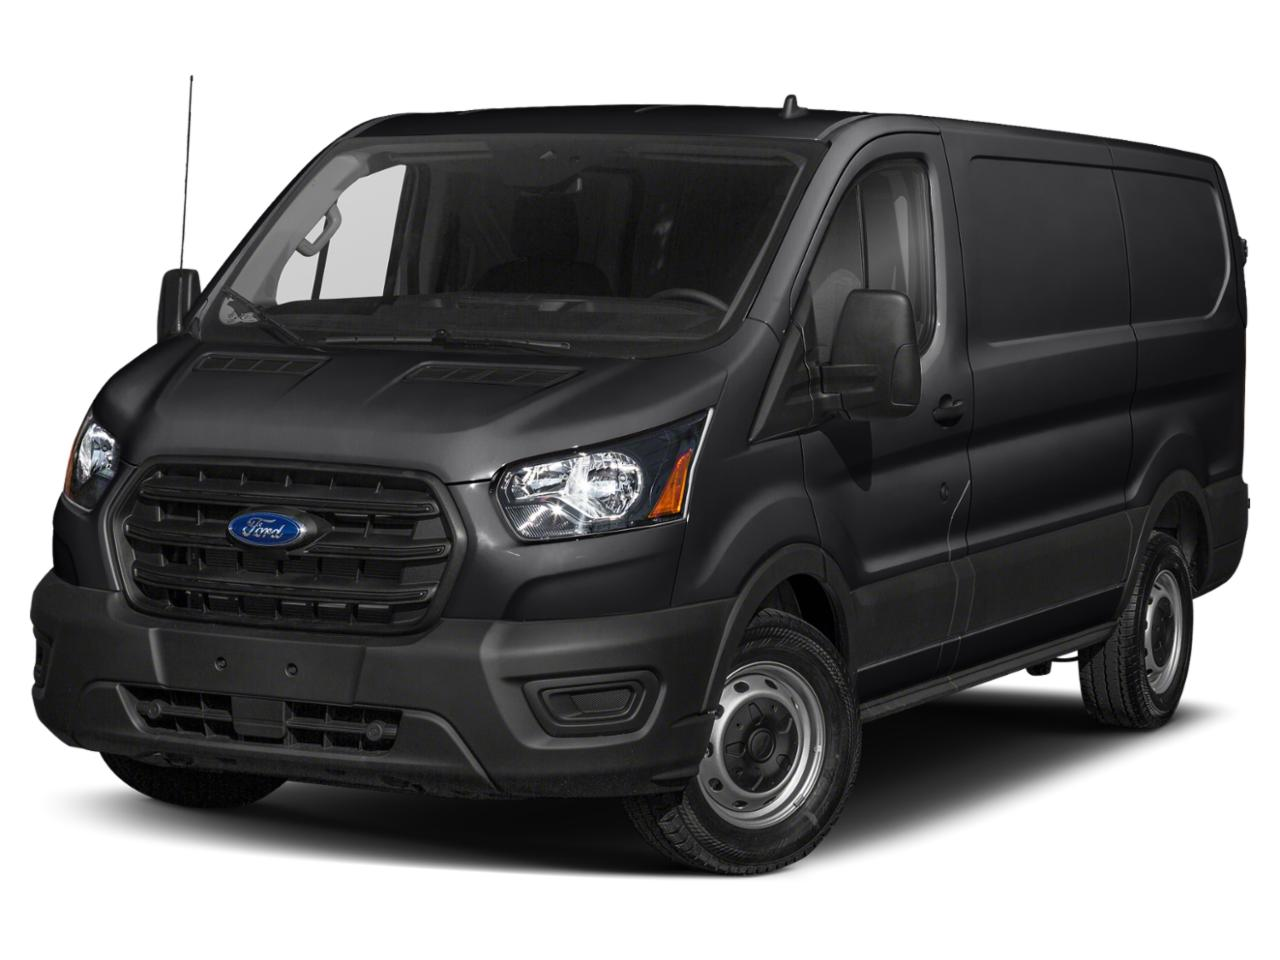 2020 Ford Transit Cargo Van Vehicle Photo in Milford, OH 45150